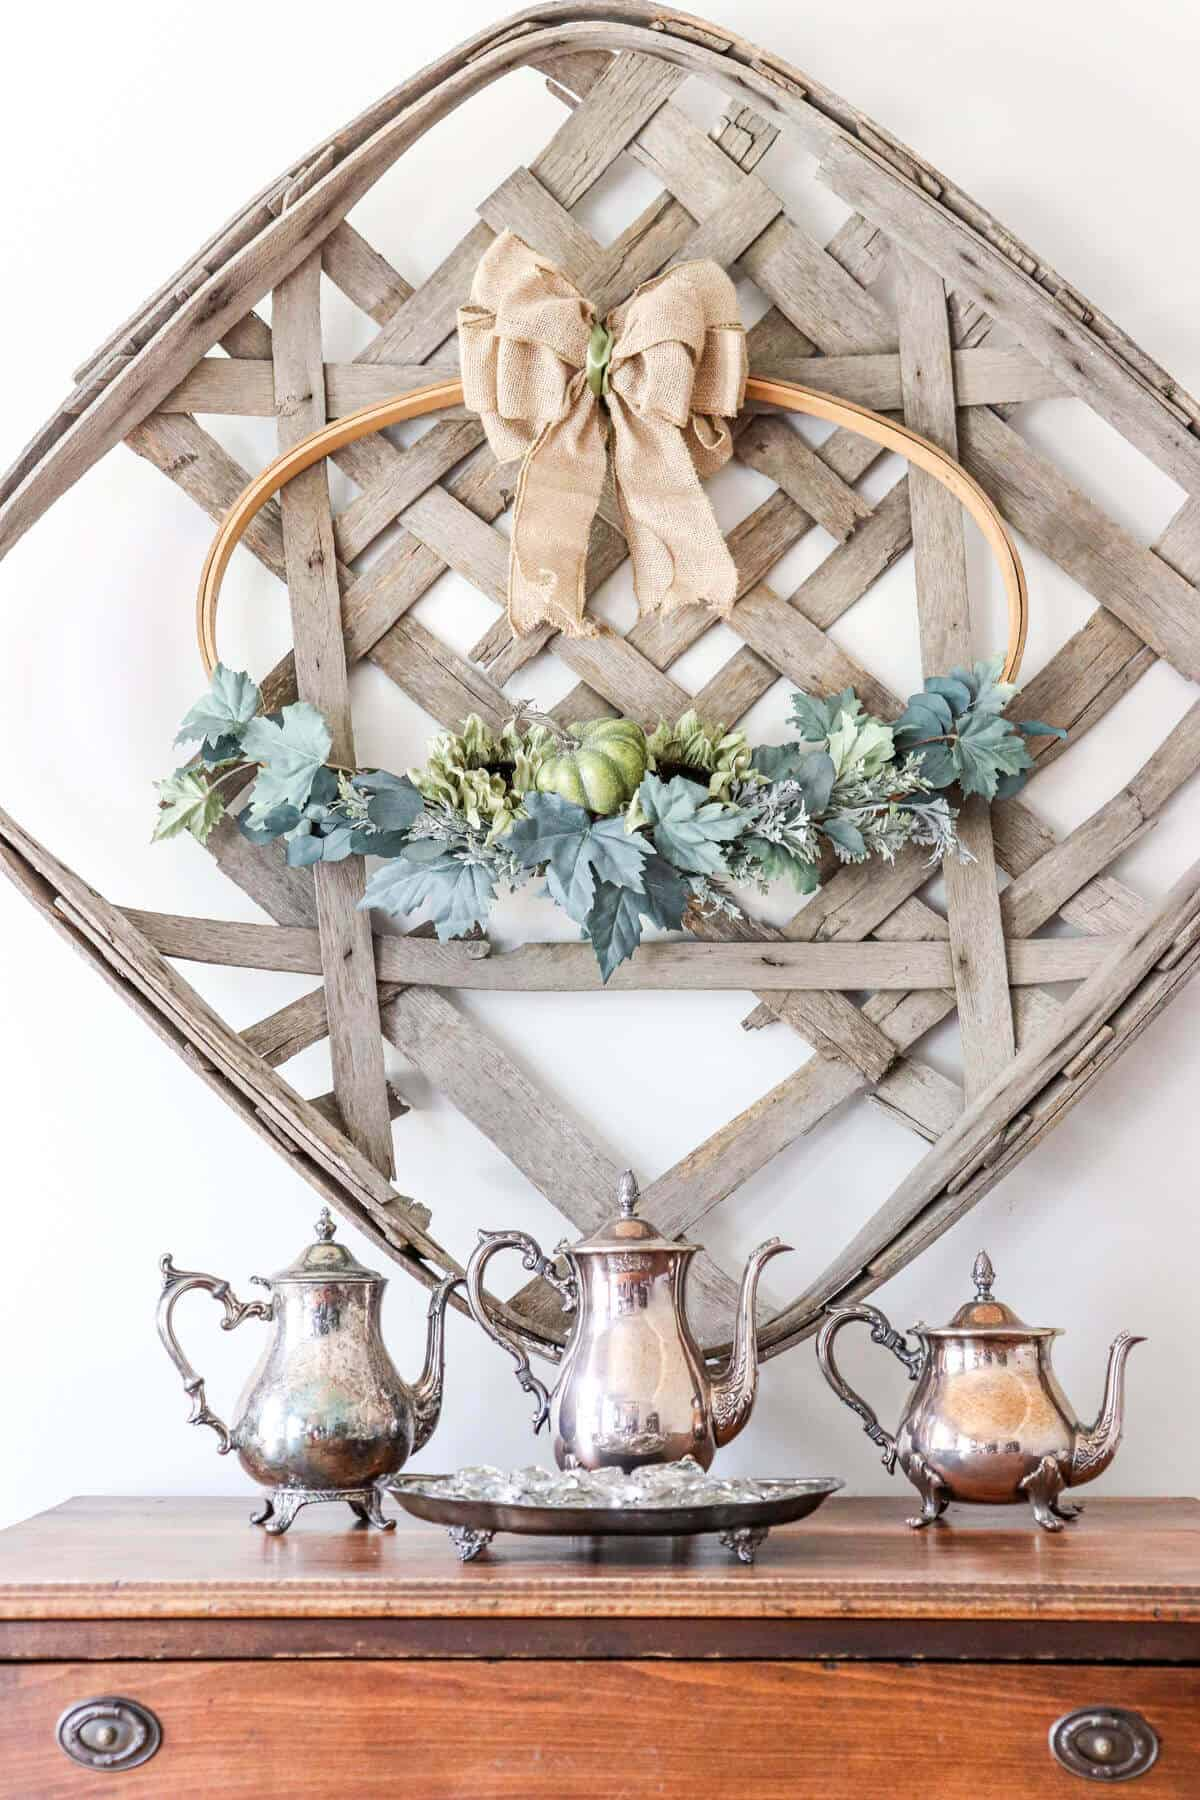 Tobacco basket with hoop wreath decorated for fall hanging above a wood table with vintage tarnished silver pitchers.